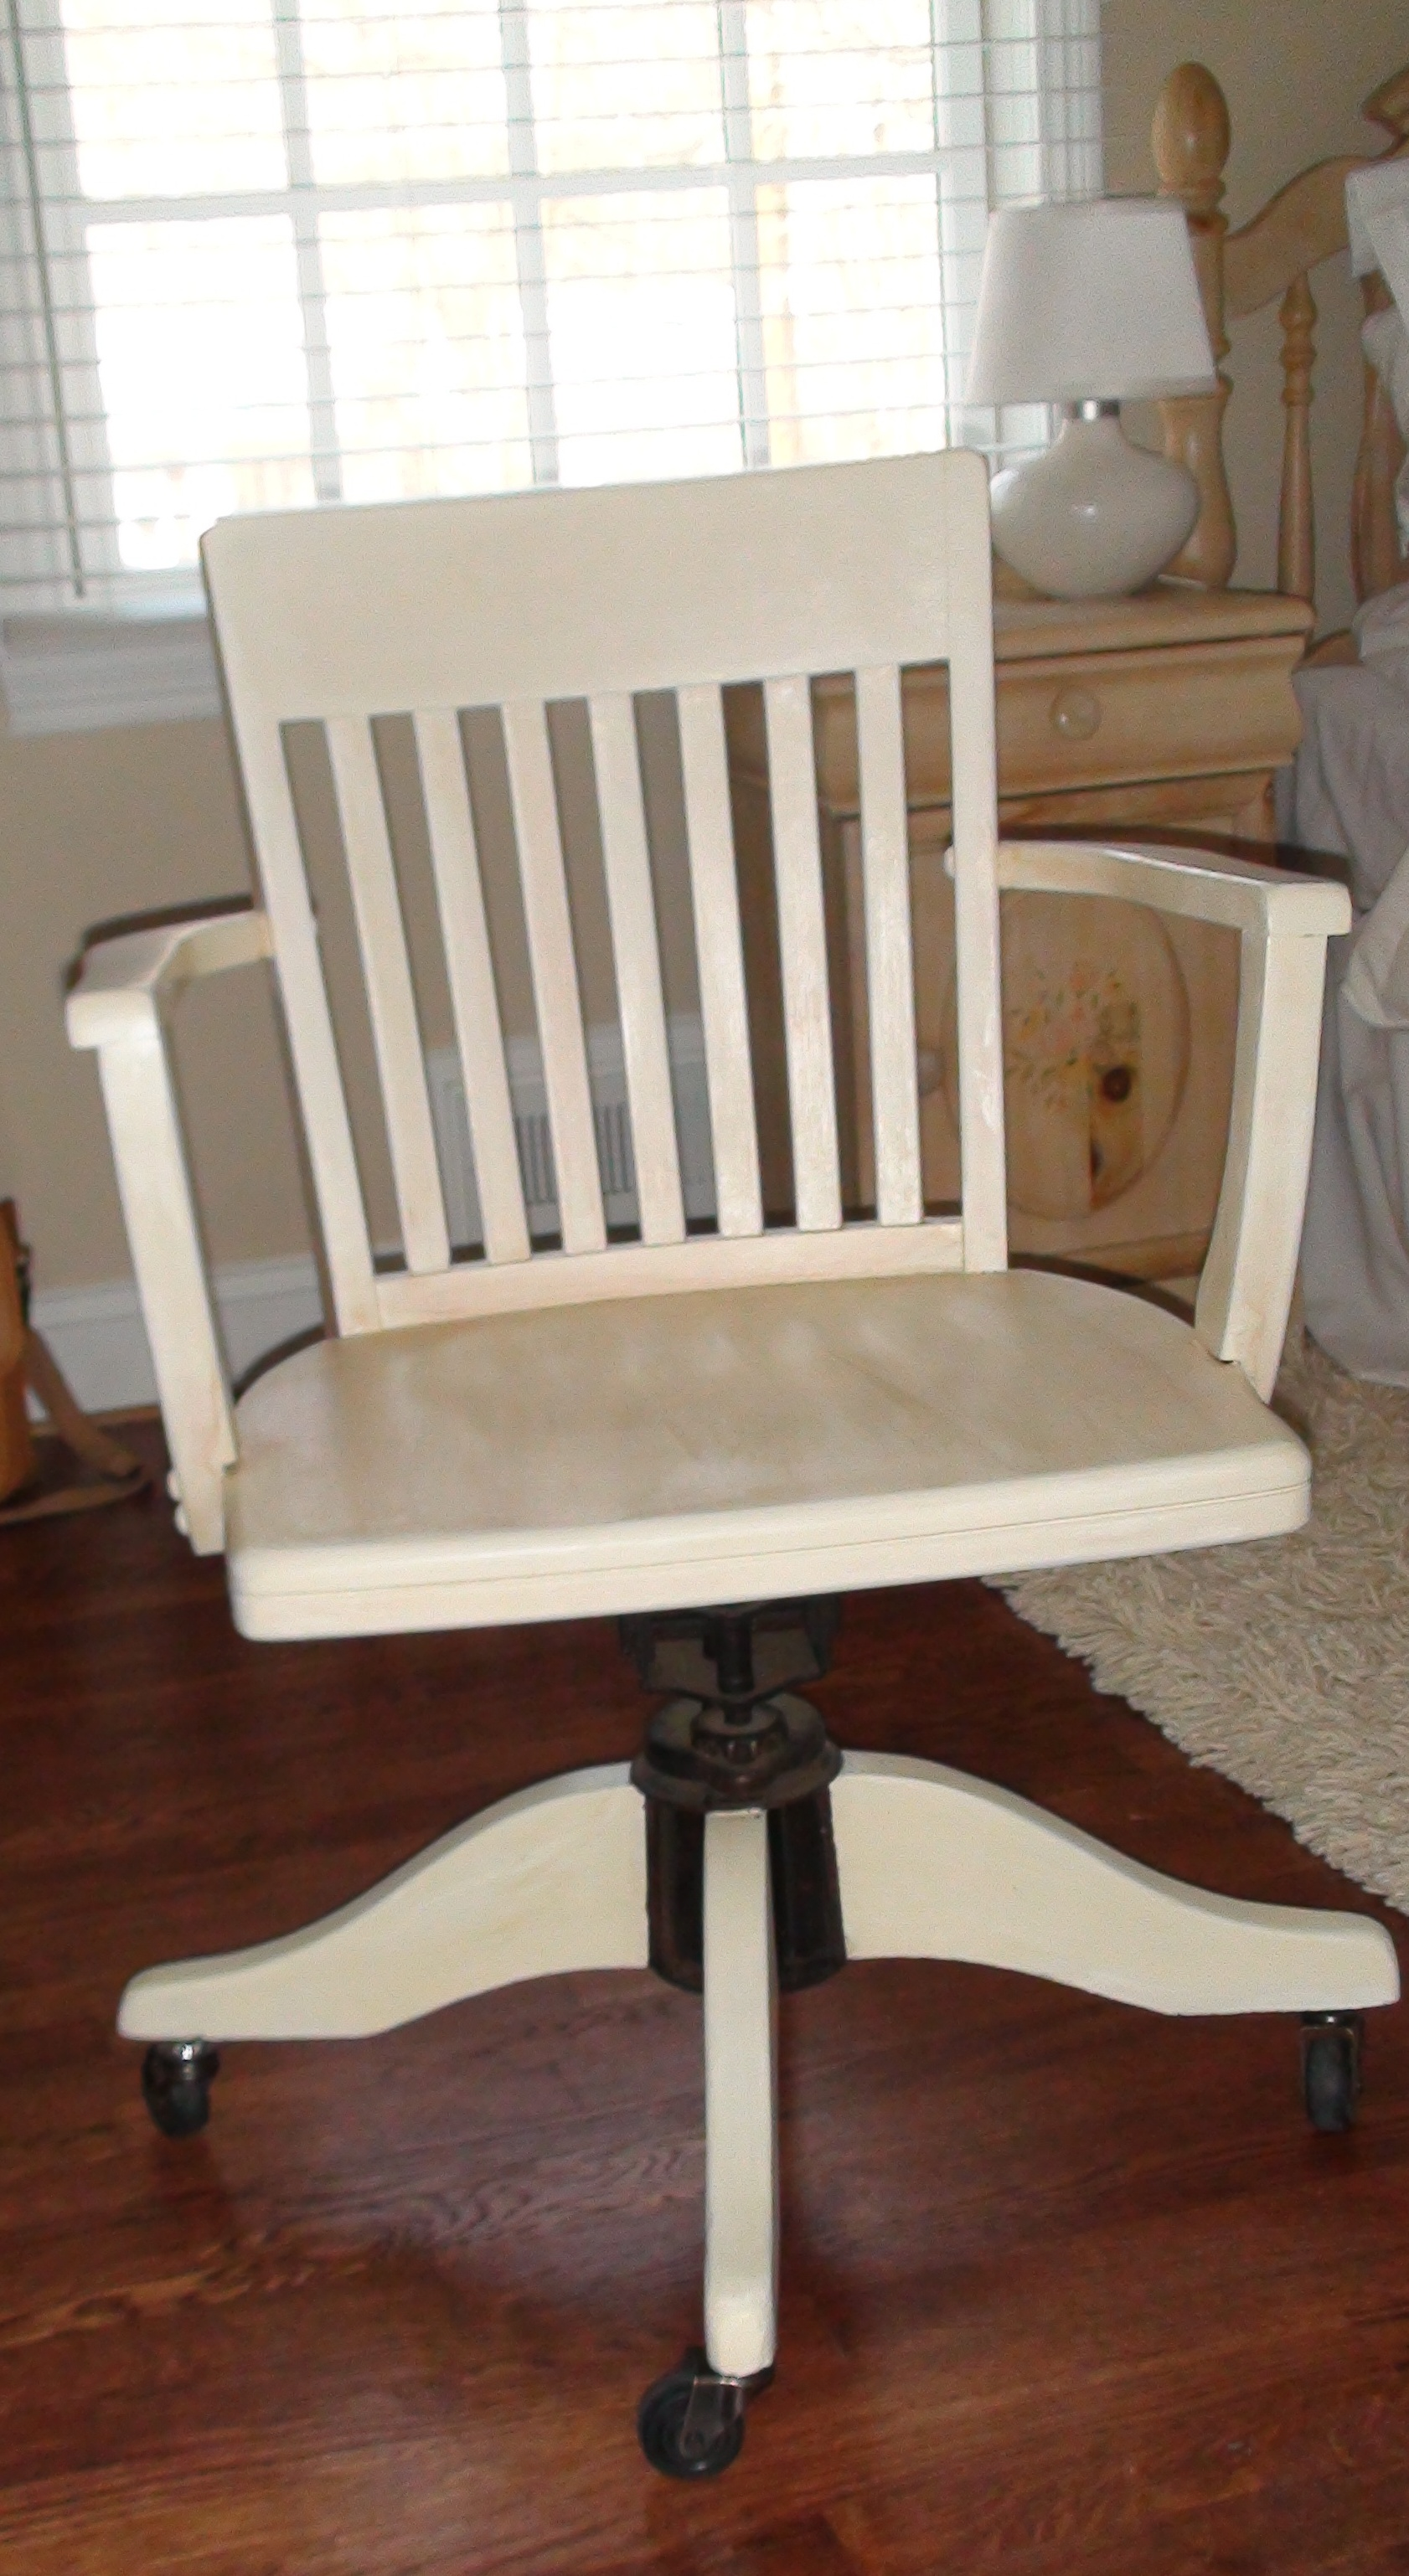 Home Office Desk Chairs Home Office Refinishing An Antique Desk Chair One Home Made